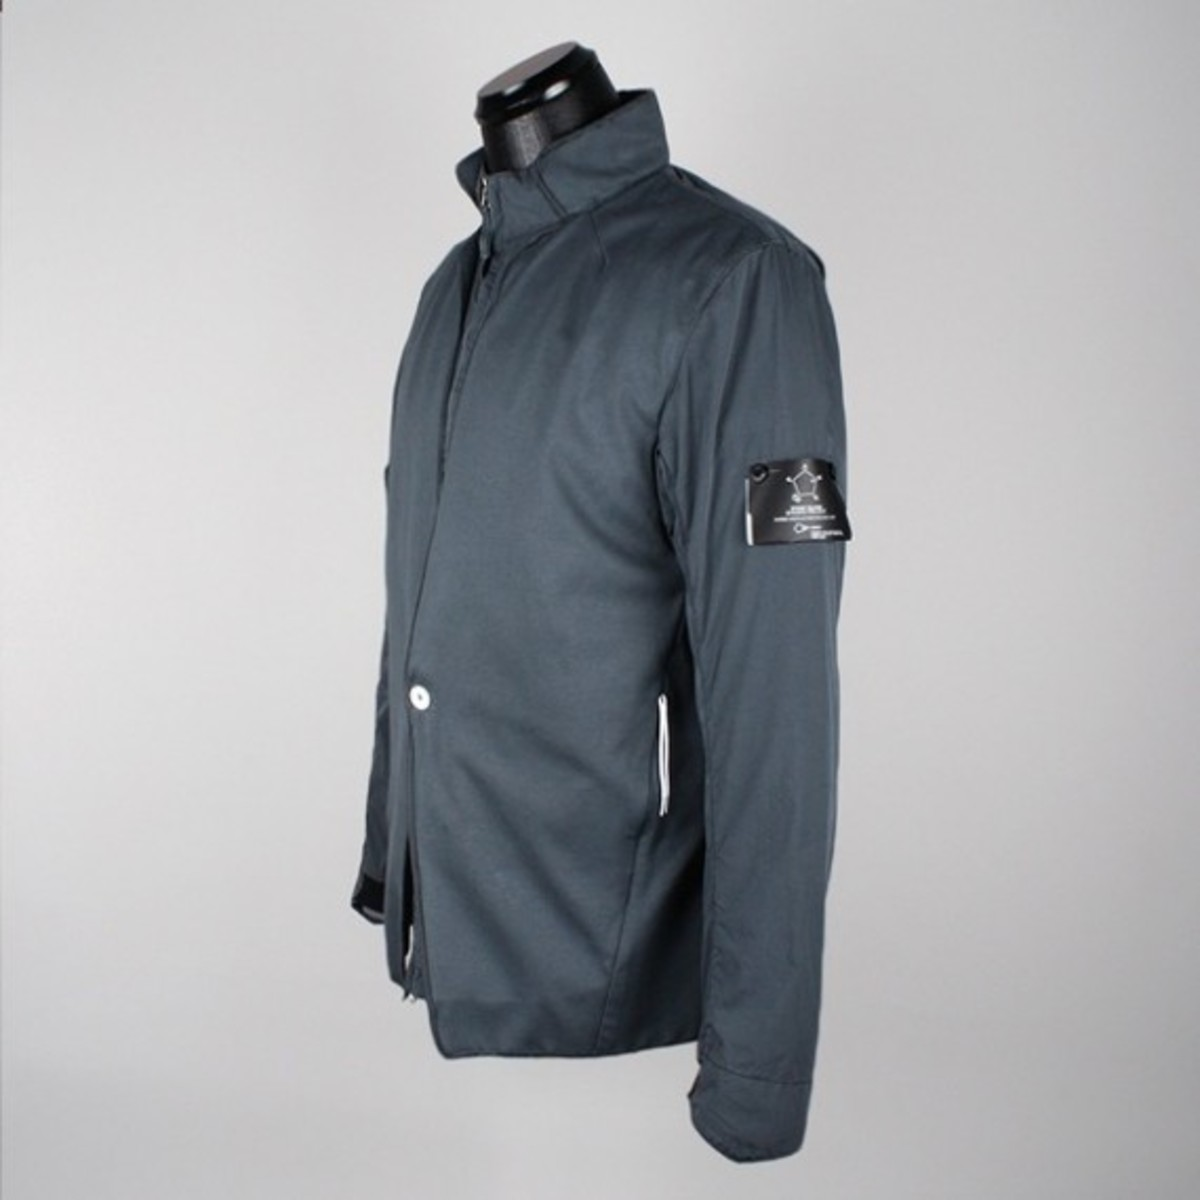 stone-island-shadow-project-spring-summer-2012-collection-09